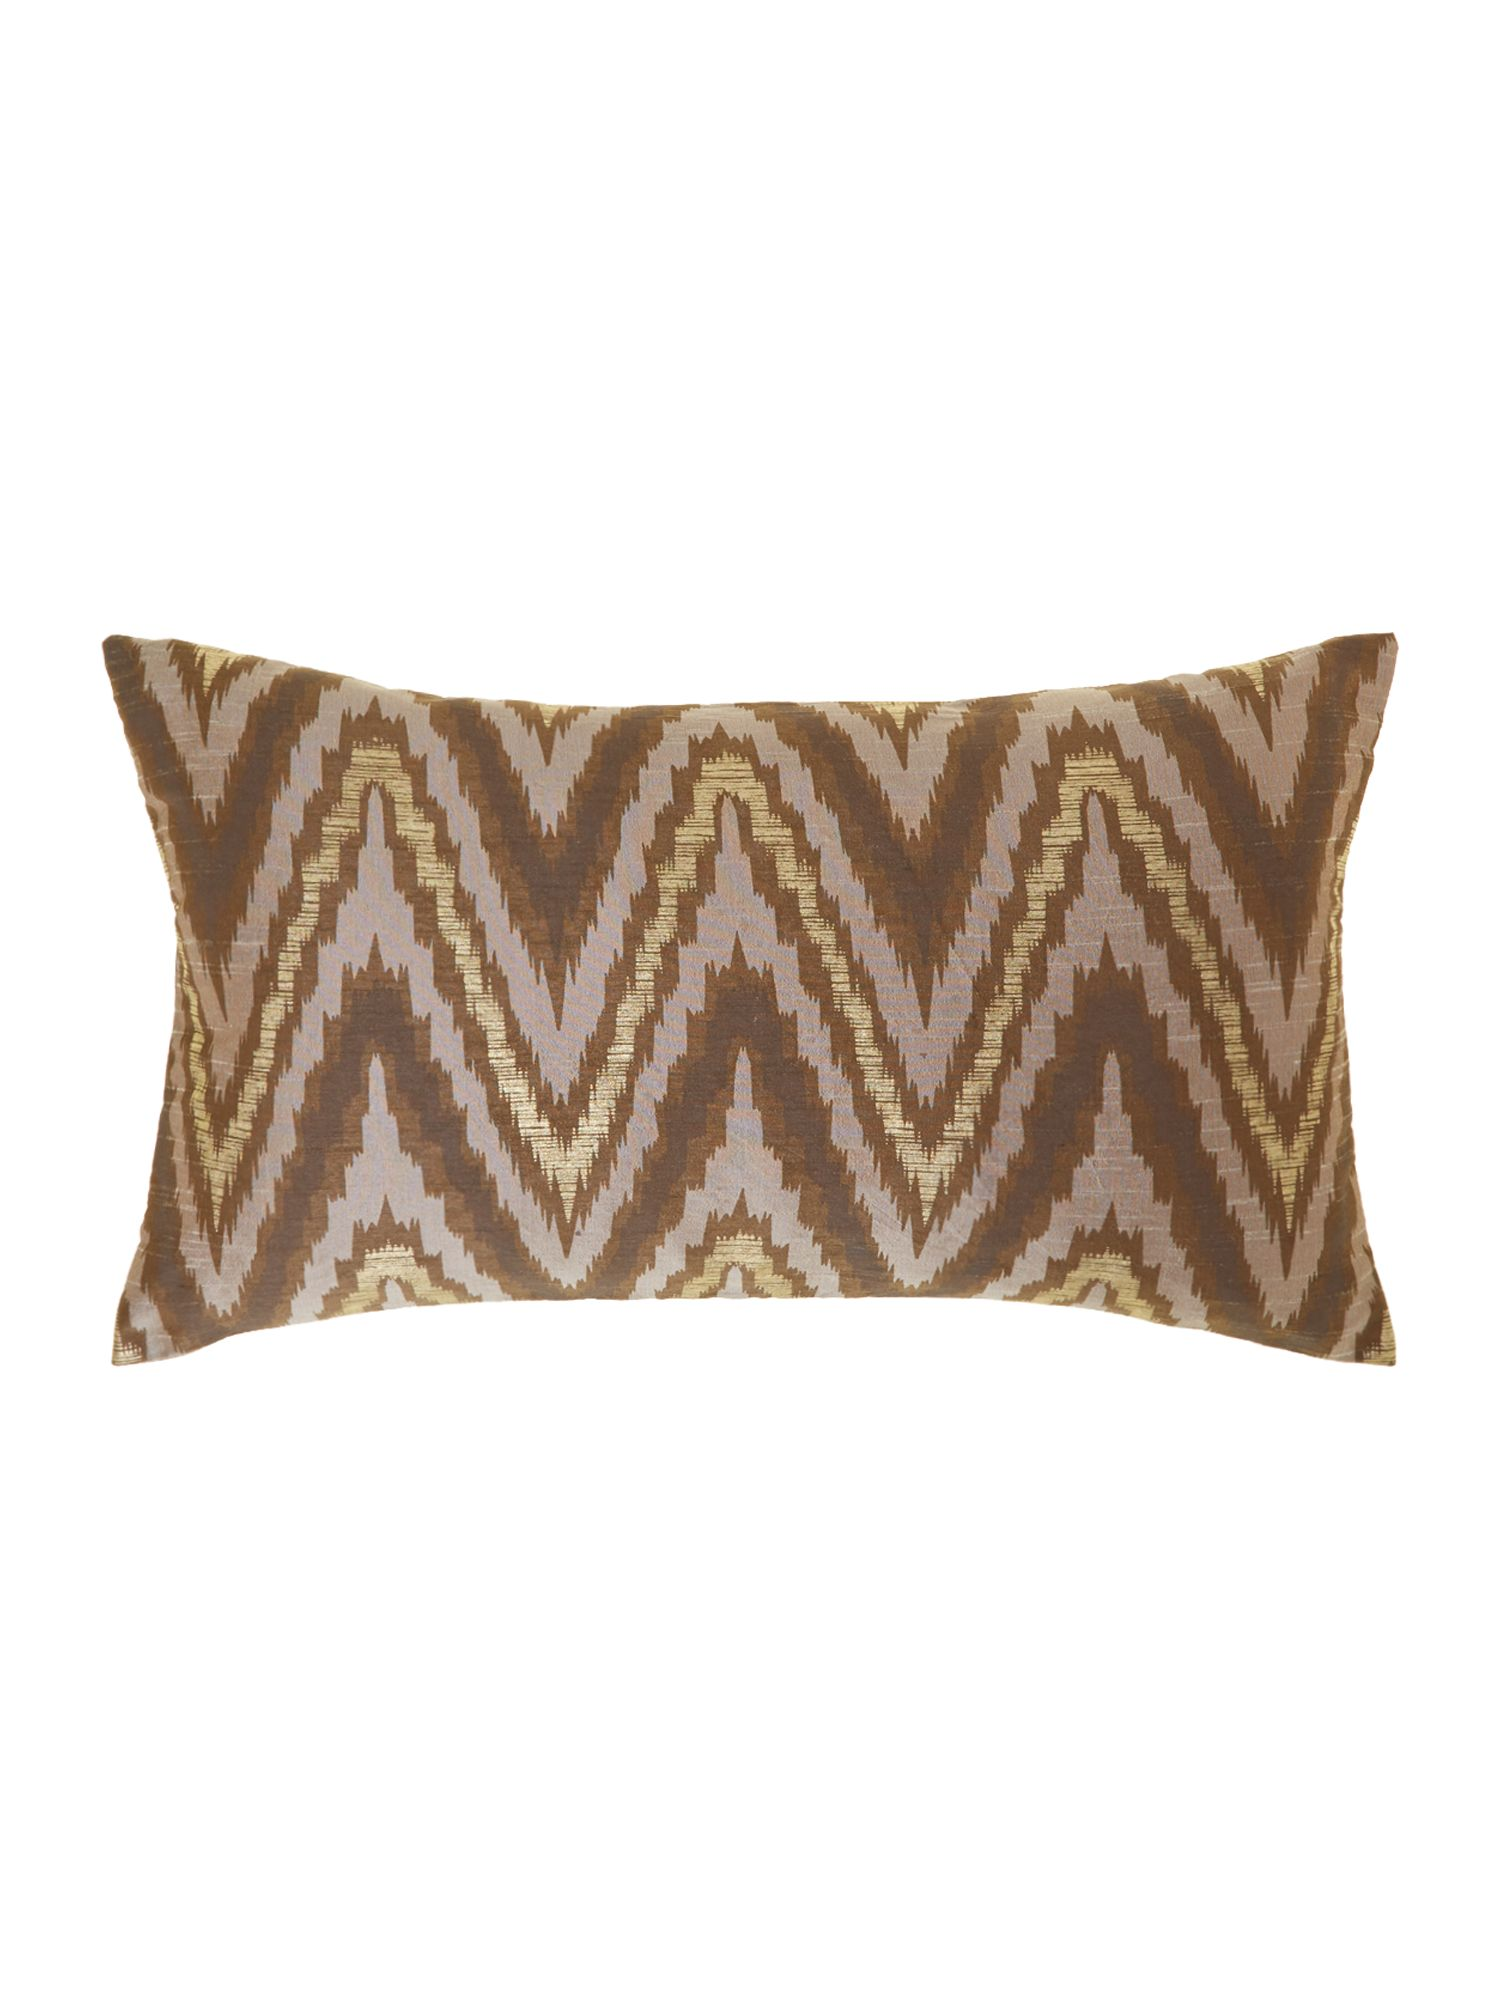 Ikat design oblong cushion, multi-bright